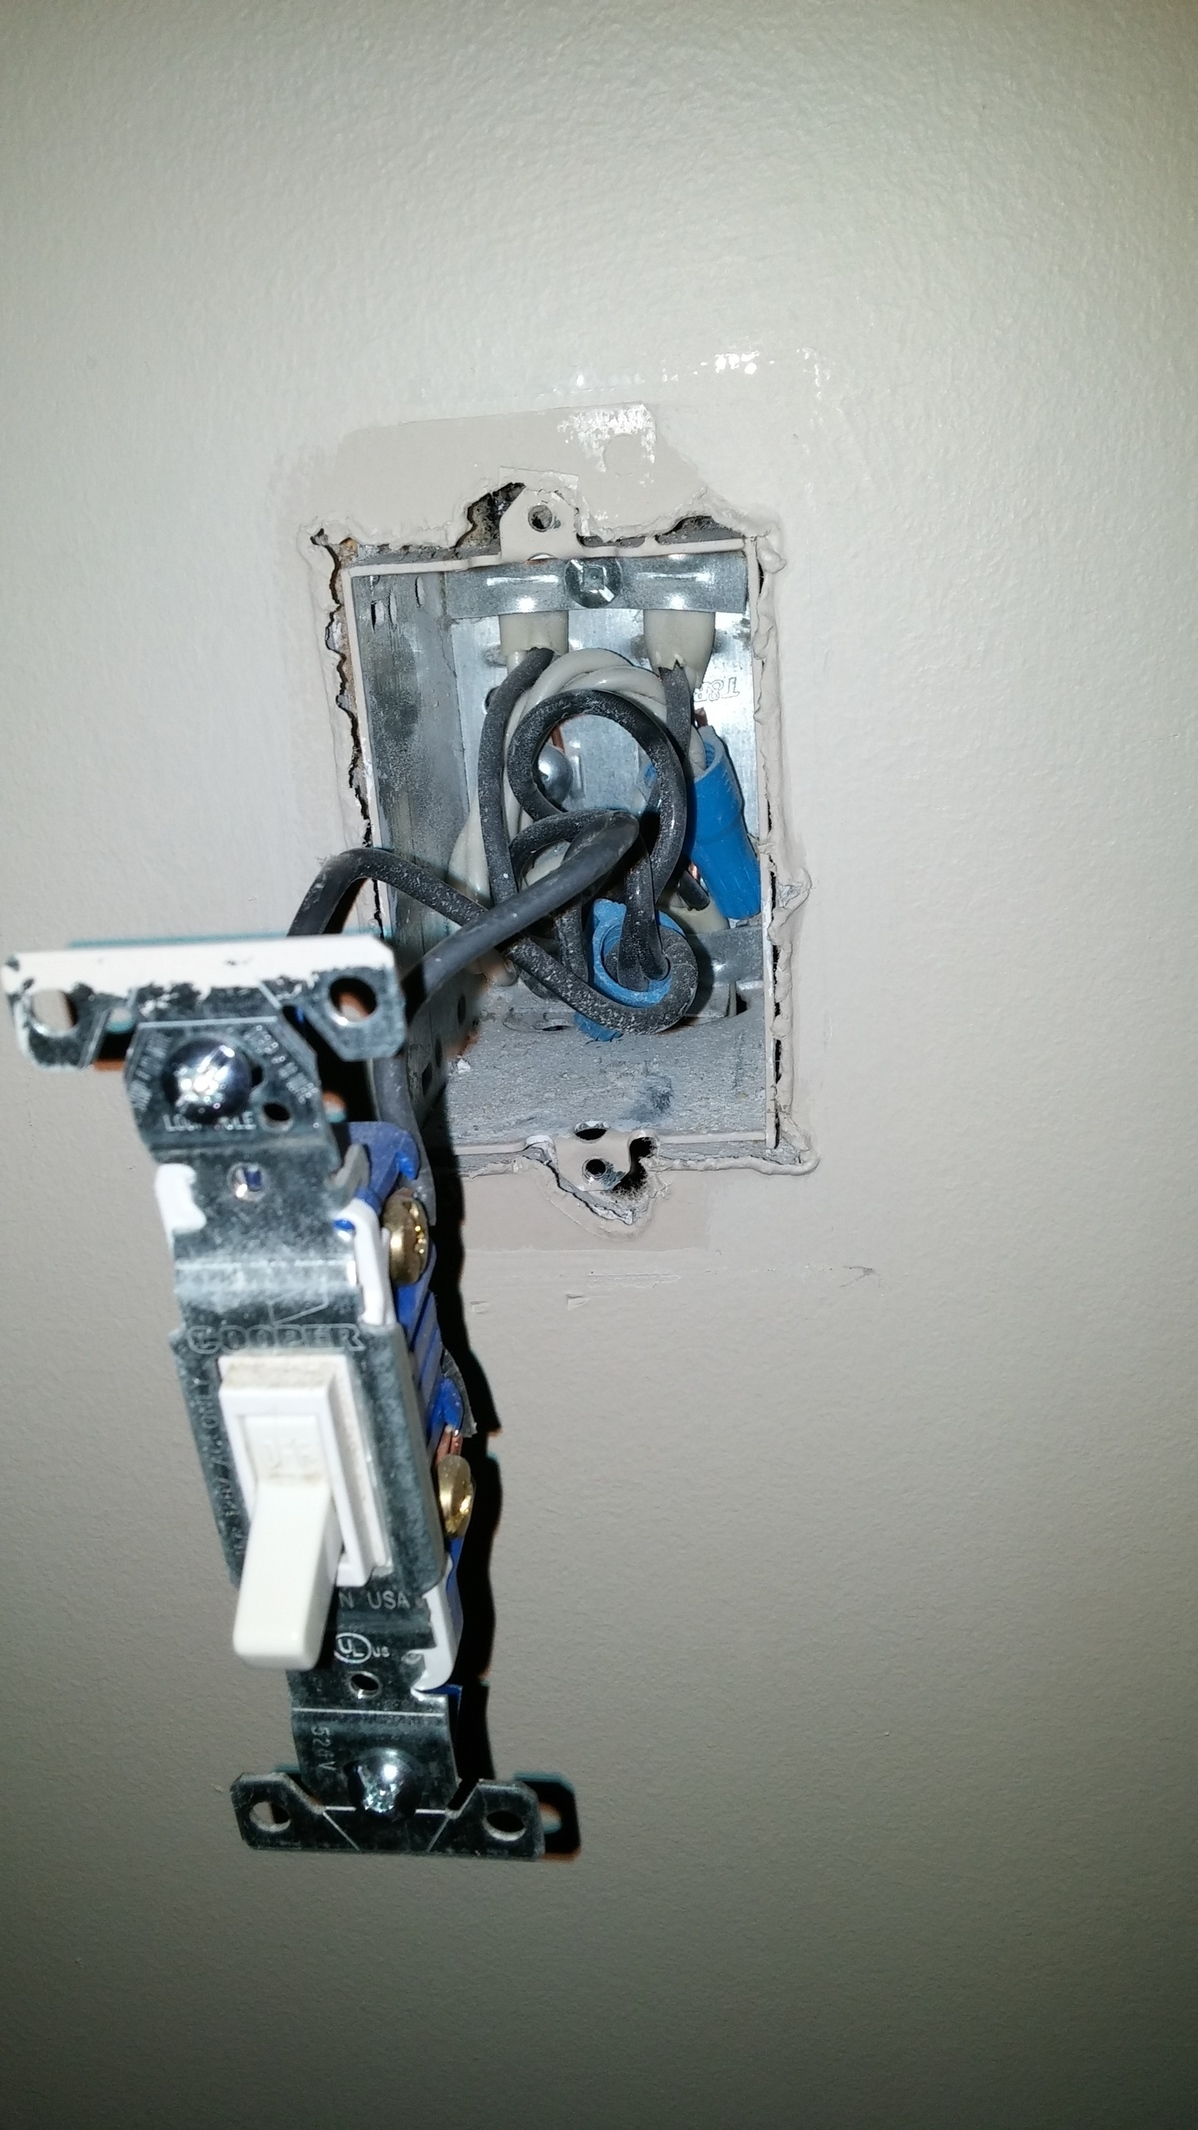 Wiring Help For Aeotec Micro Switch Home Automation Openhab Microswitchwiringjpg 20150929 1838581198x2130 773 Kb